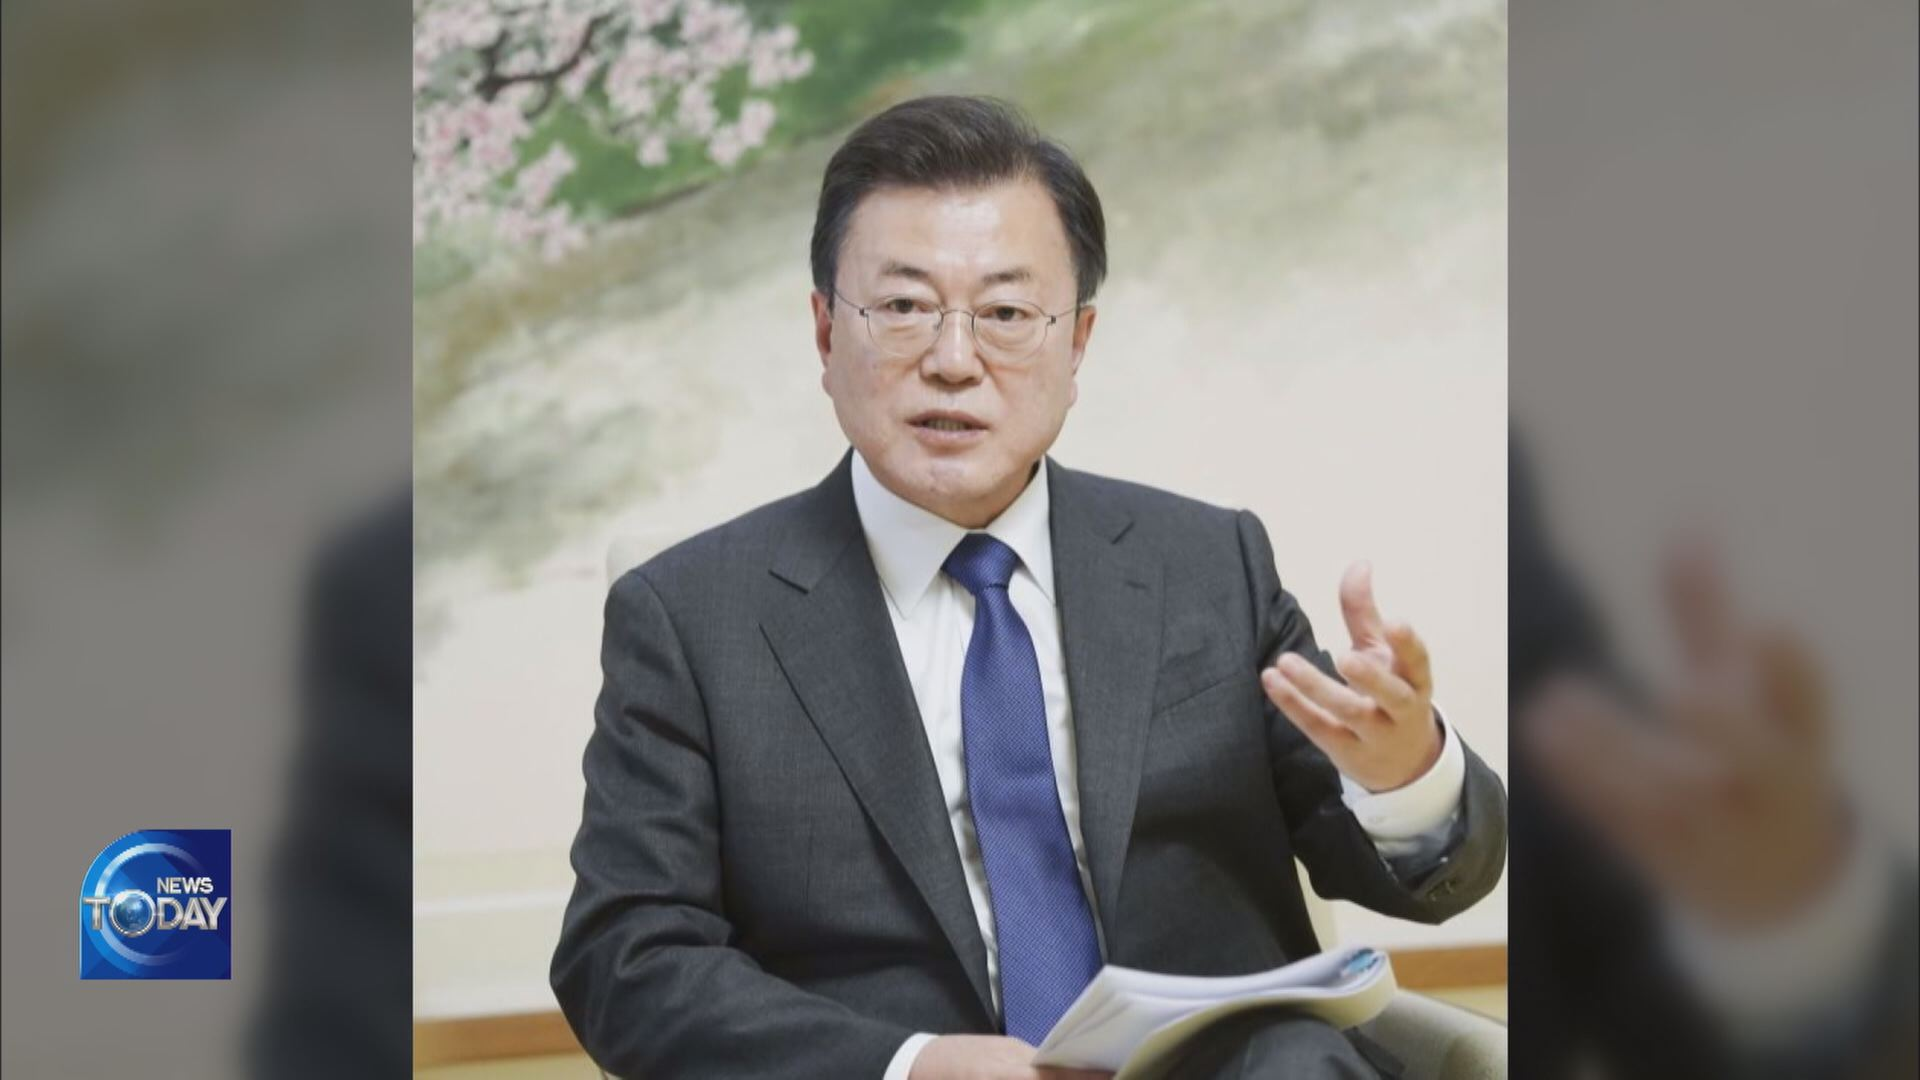 MOON URGES BIDEN TO ENGAGE WITH N. KOREA